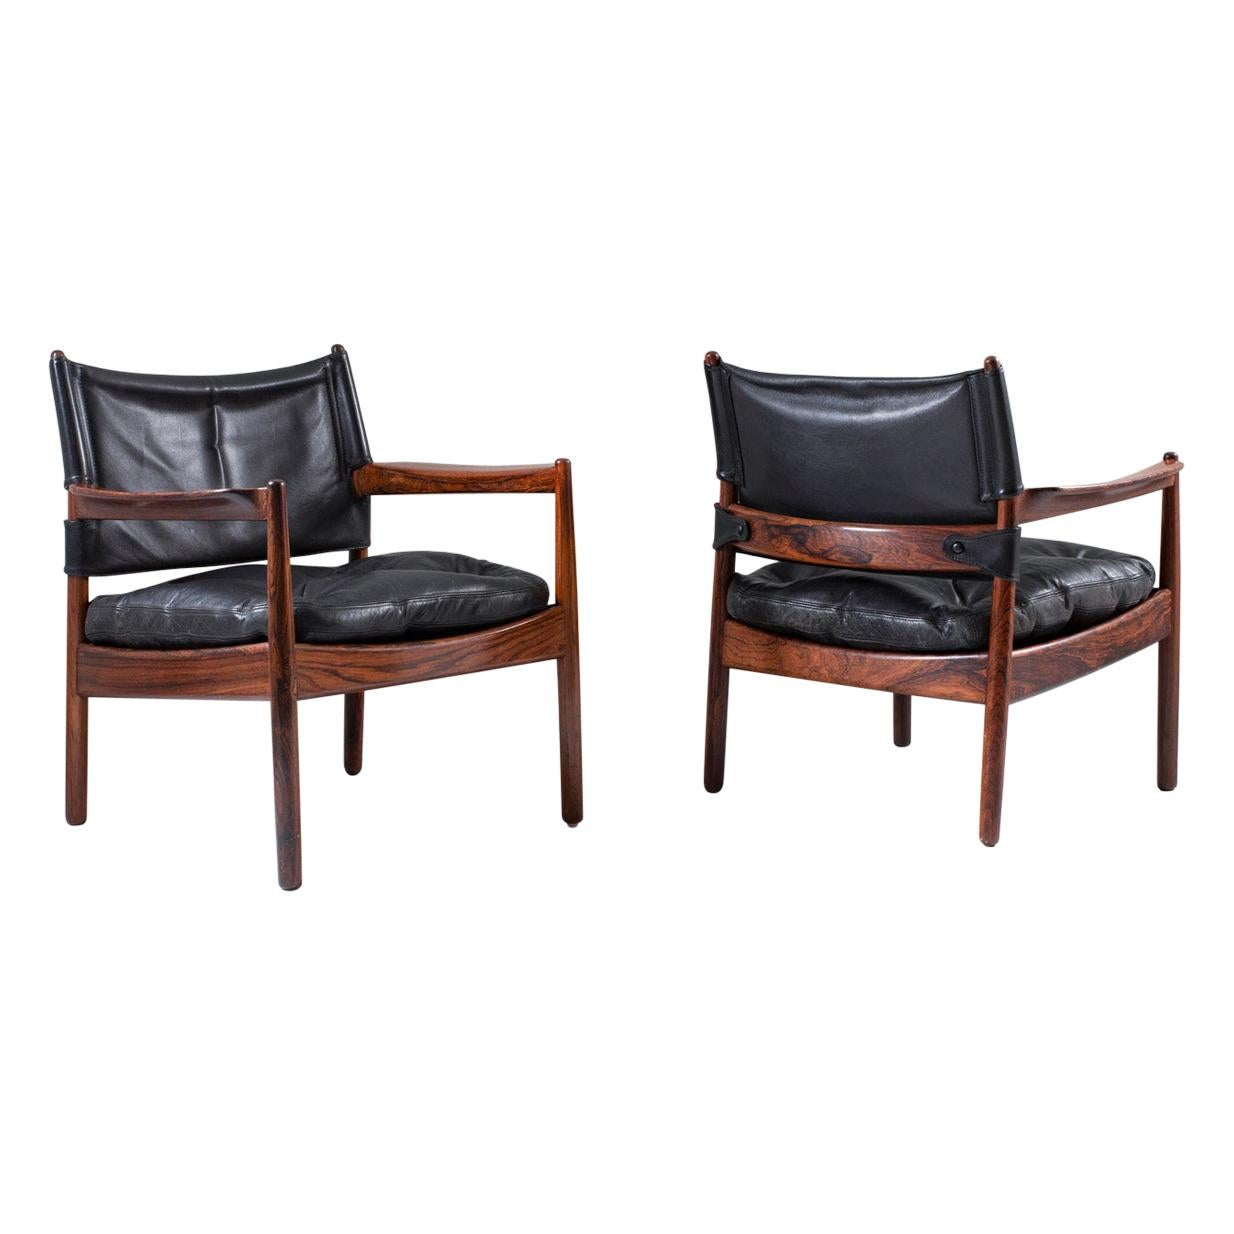 Scandinavian Leather and Rosewood Lounge Chairs by Gunnar Myrstrand, Sweden